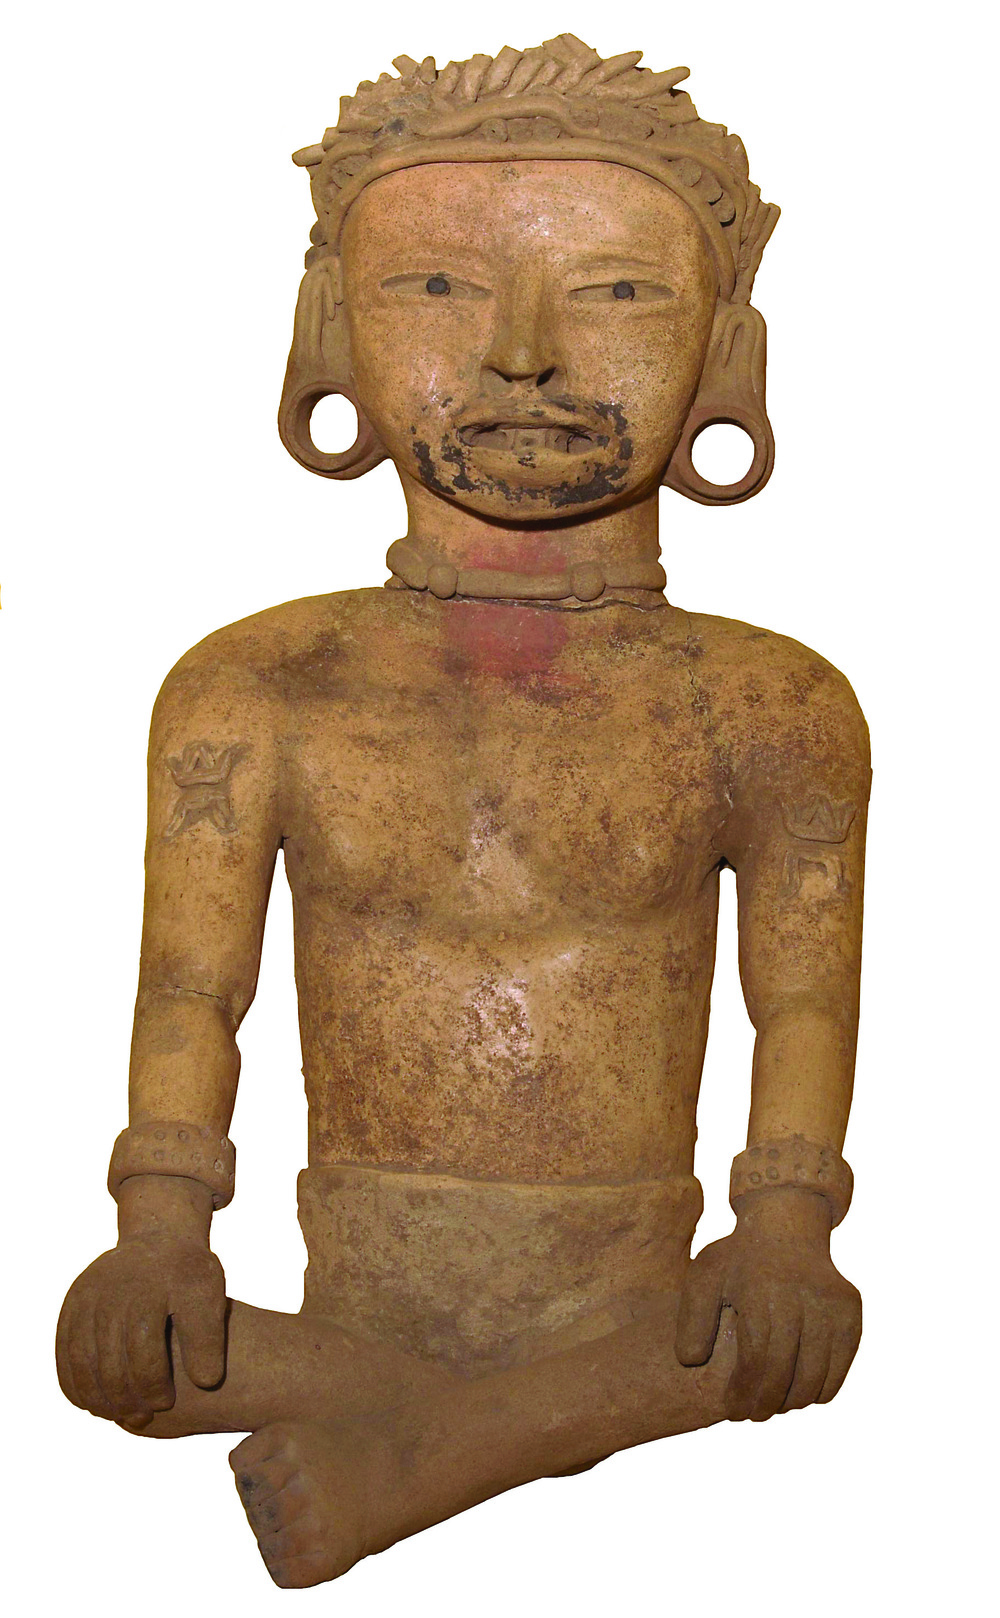 Remojadas Culture, Seated Male Figure, 500-700 CE, Ceramic, Polk Museum of Art Permanent Collection 1983.1.6, Gift of Dr. and Mrs. David Taxdal